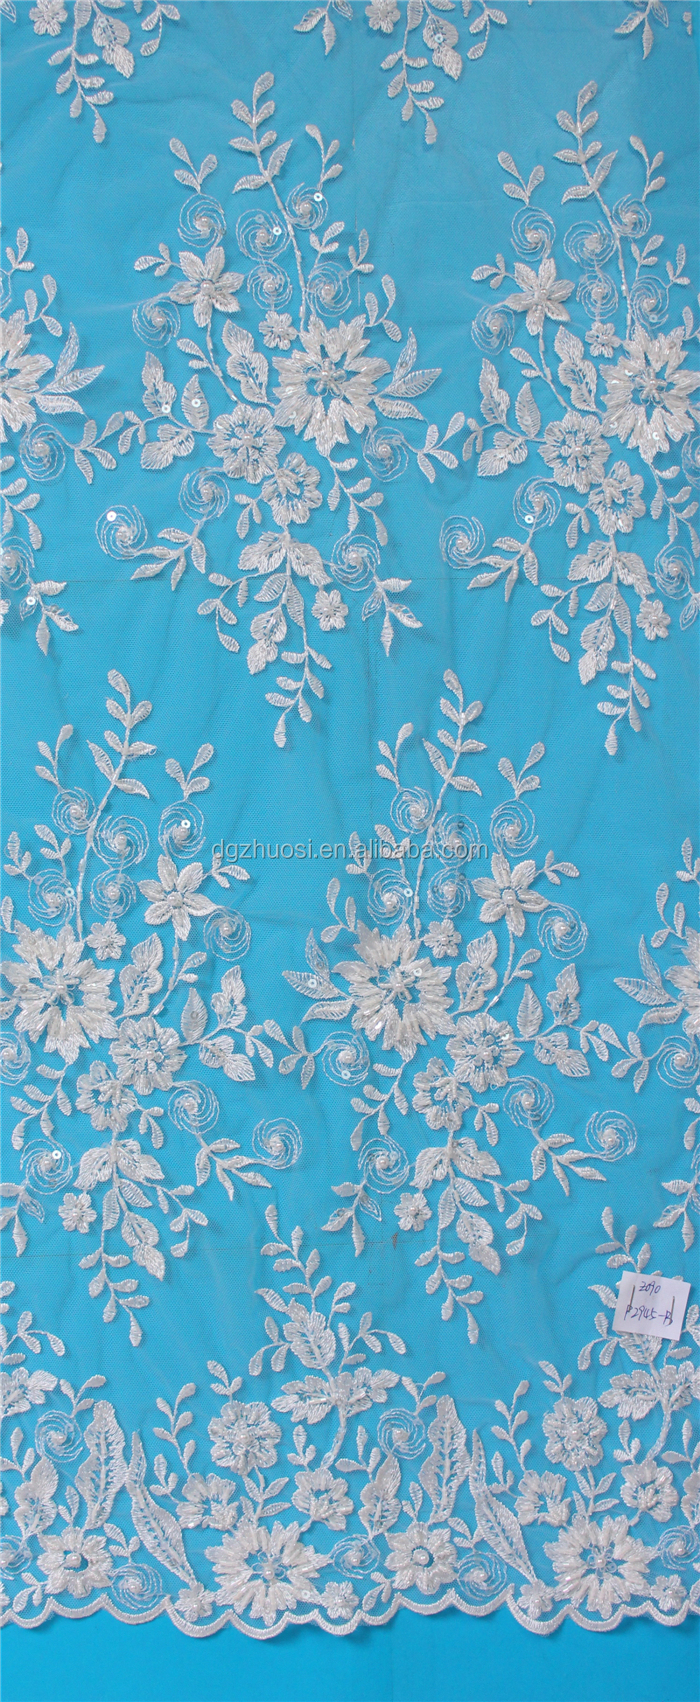 Luxury Lace Fabric With Heavy Beaded Embroidery Wedding Dress - Buy ...